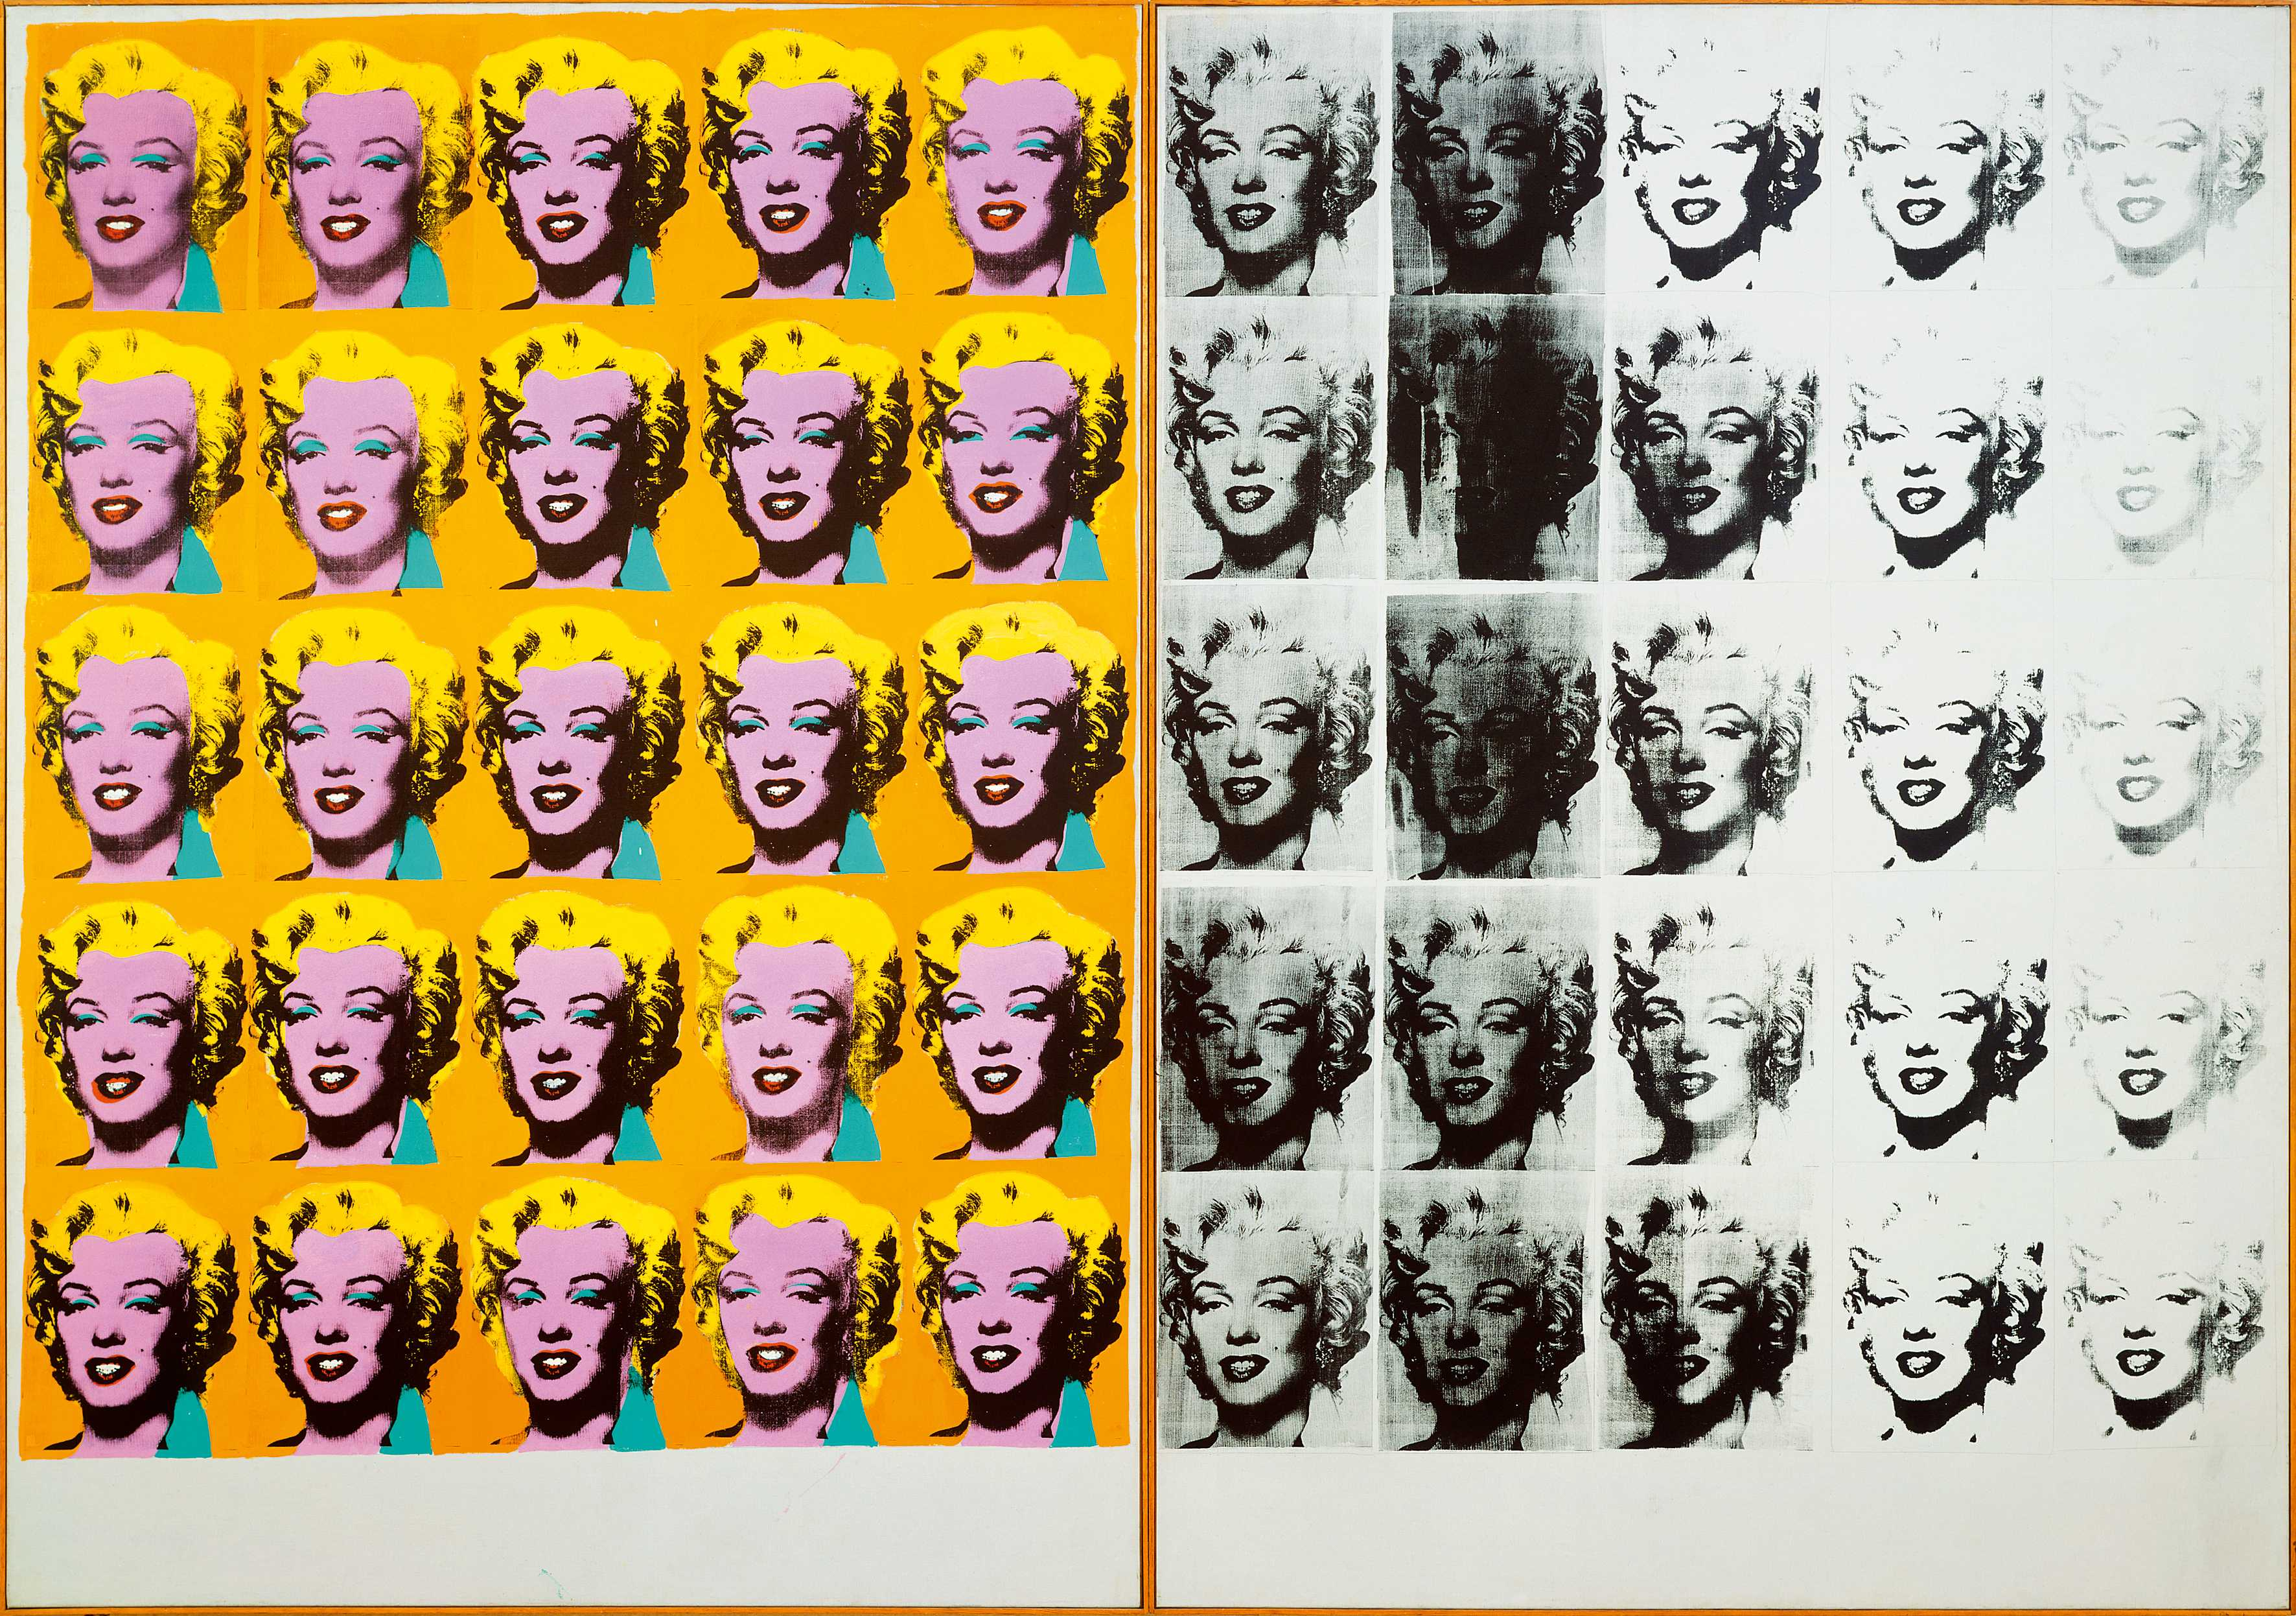 Andy Warhol (1928 – 1987), Marilyn Diptych, 1962, Tate © 2019 The Andy Warhol Foundation for the Visual Arts, Inc / Artists Right Society (ARS), New York and DACS, London